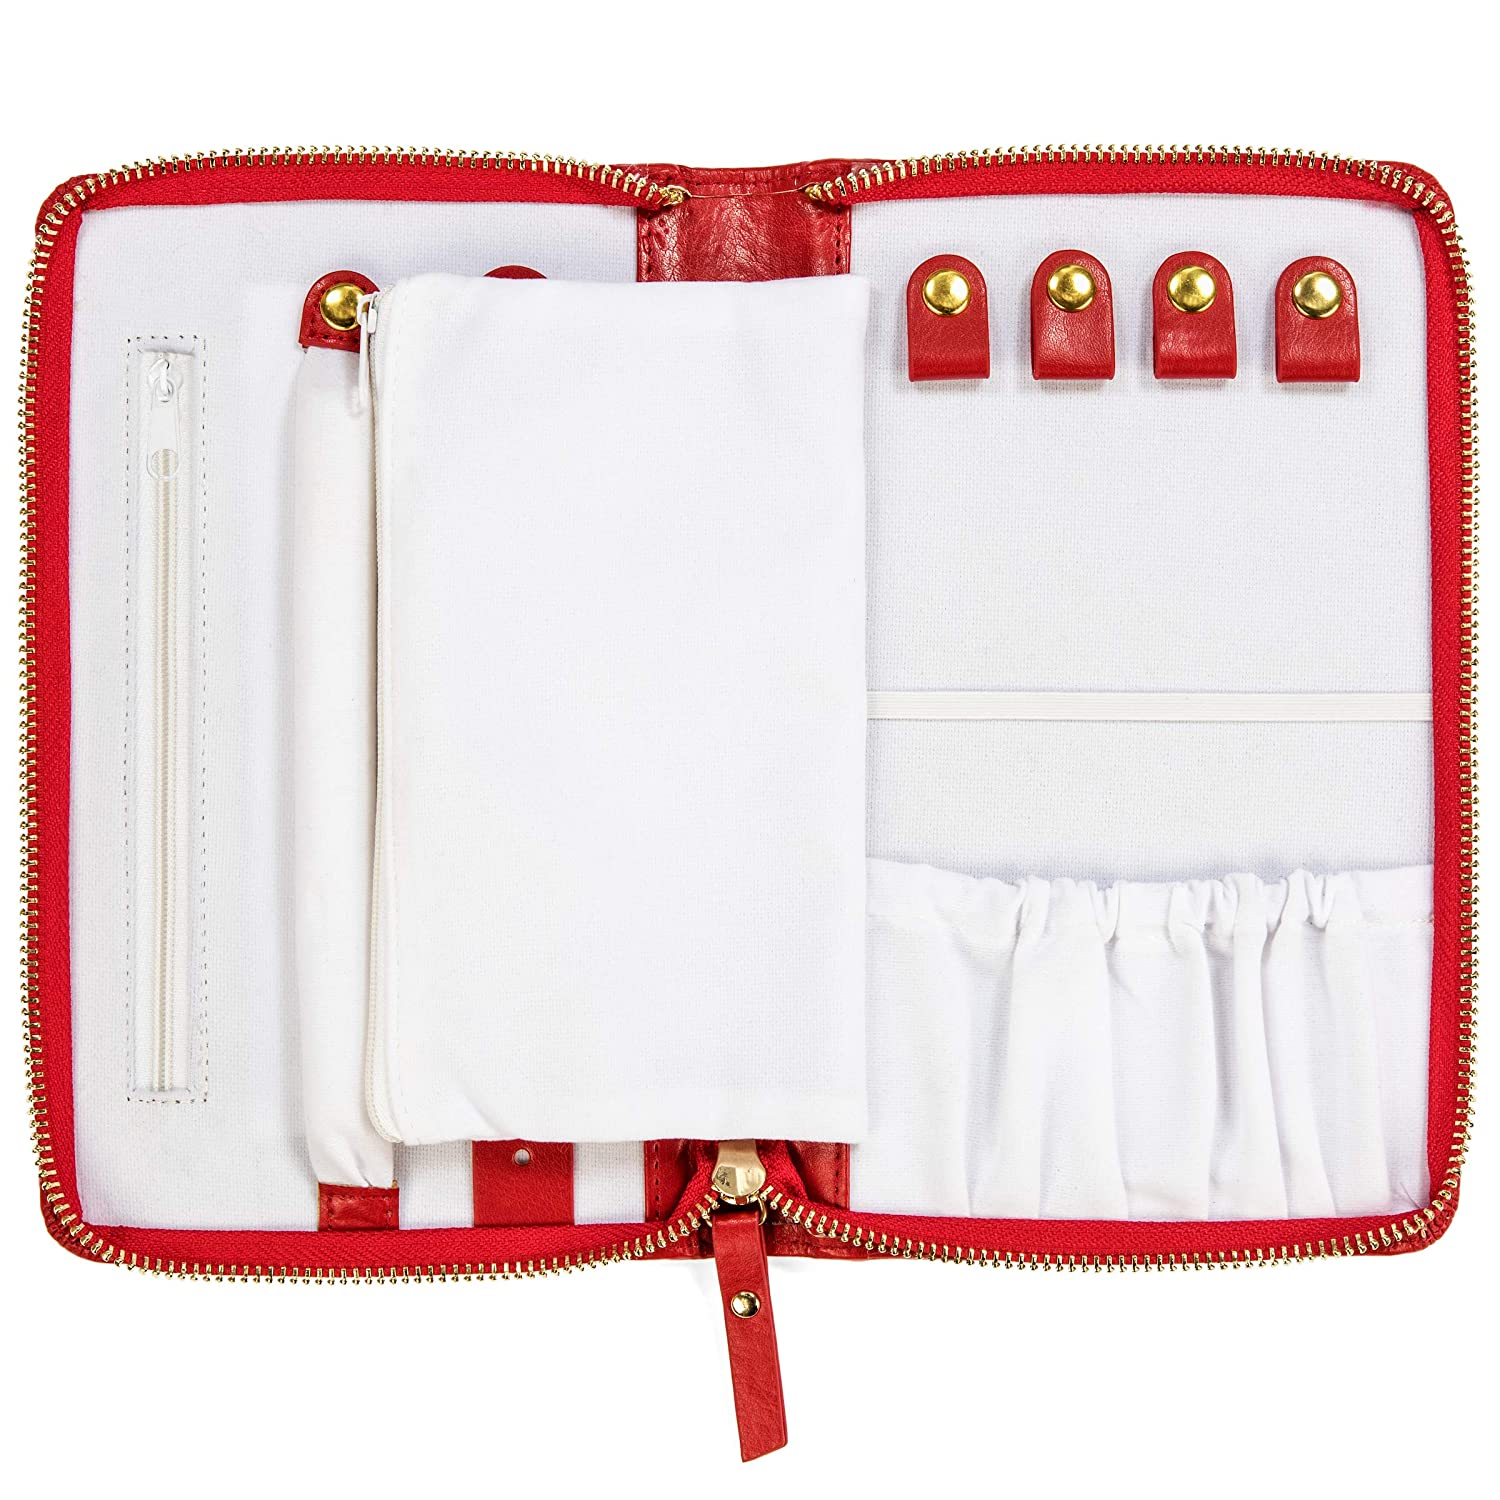 Compact Full Zip Travel Jewelry Organizer for Necklaces Bracelets and Rings Red